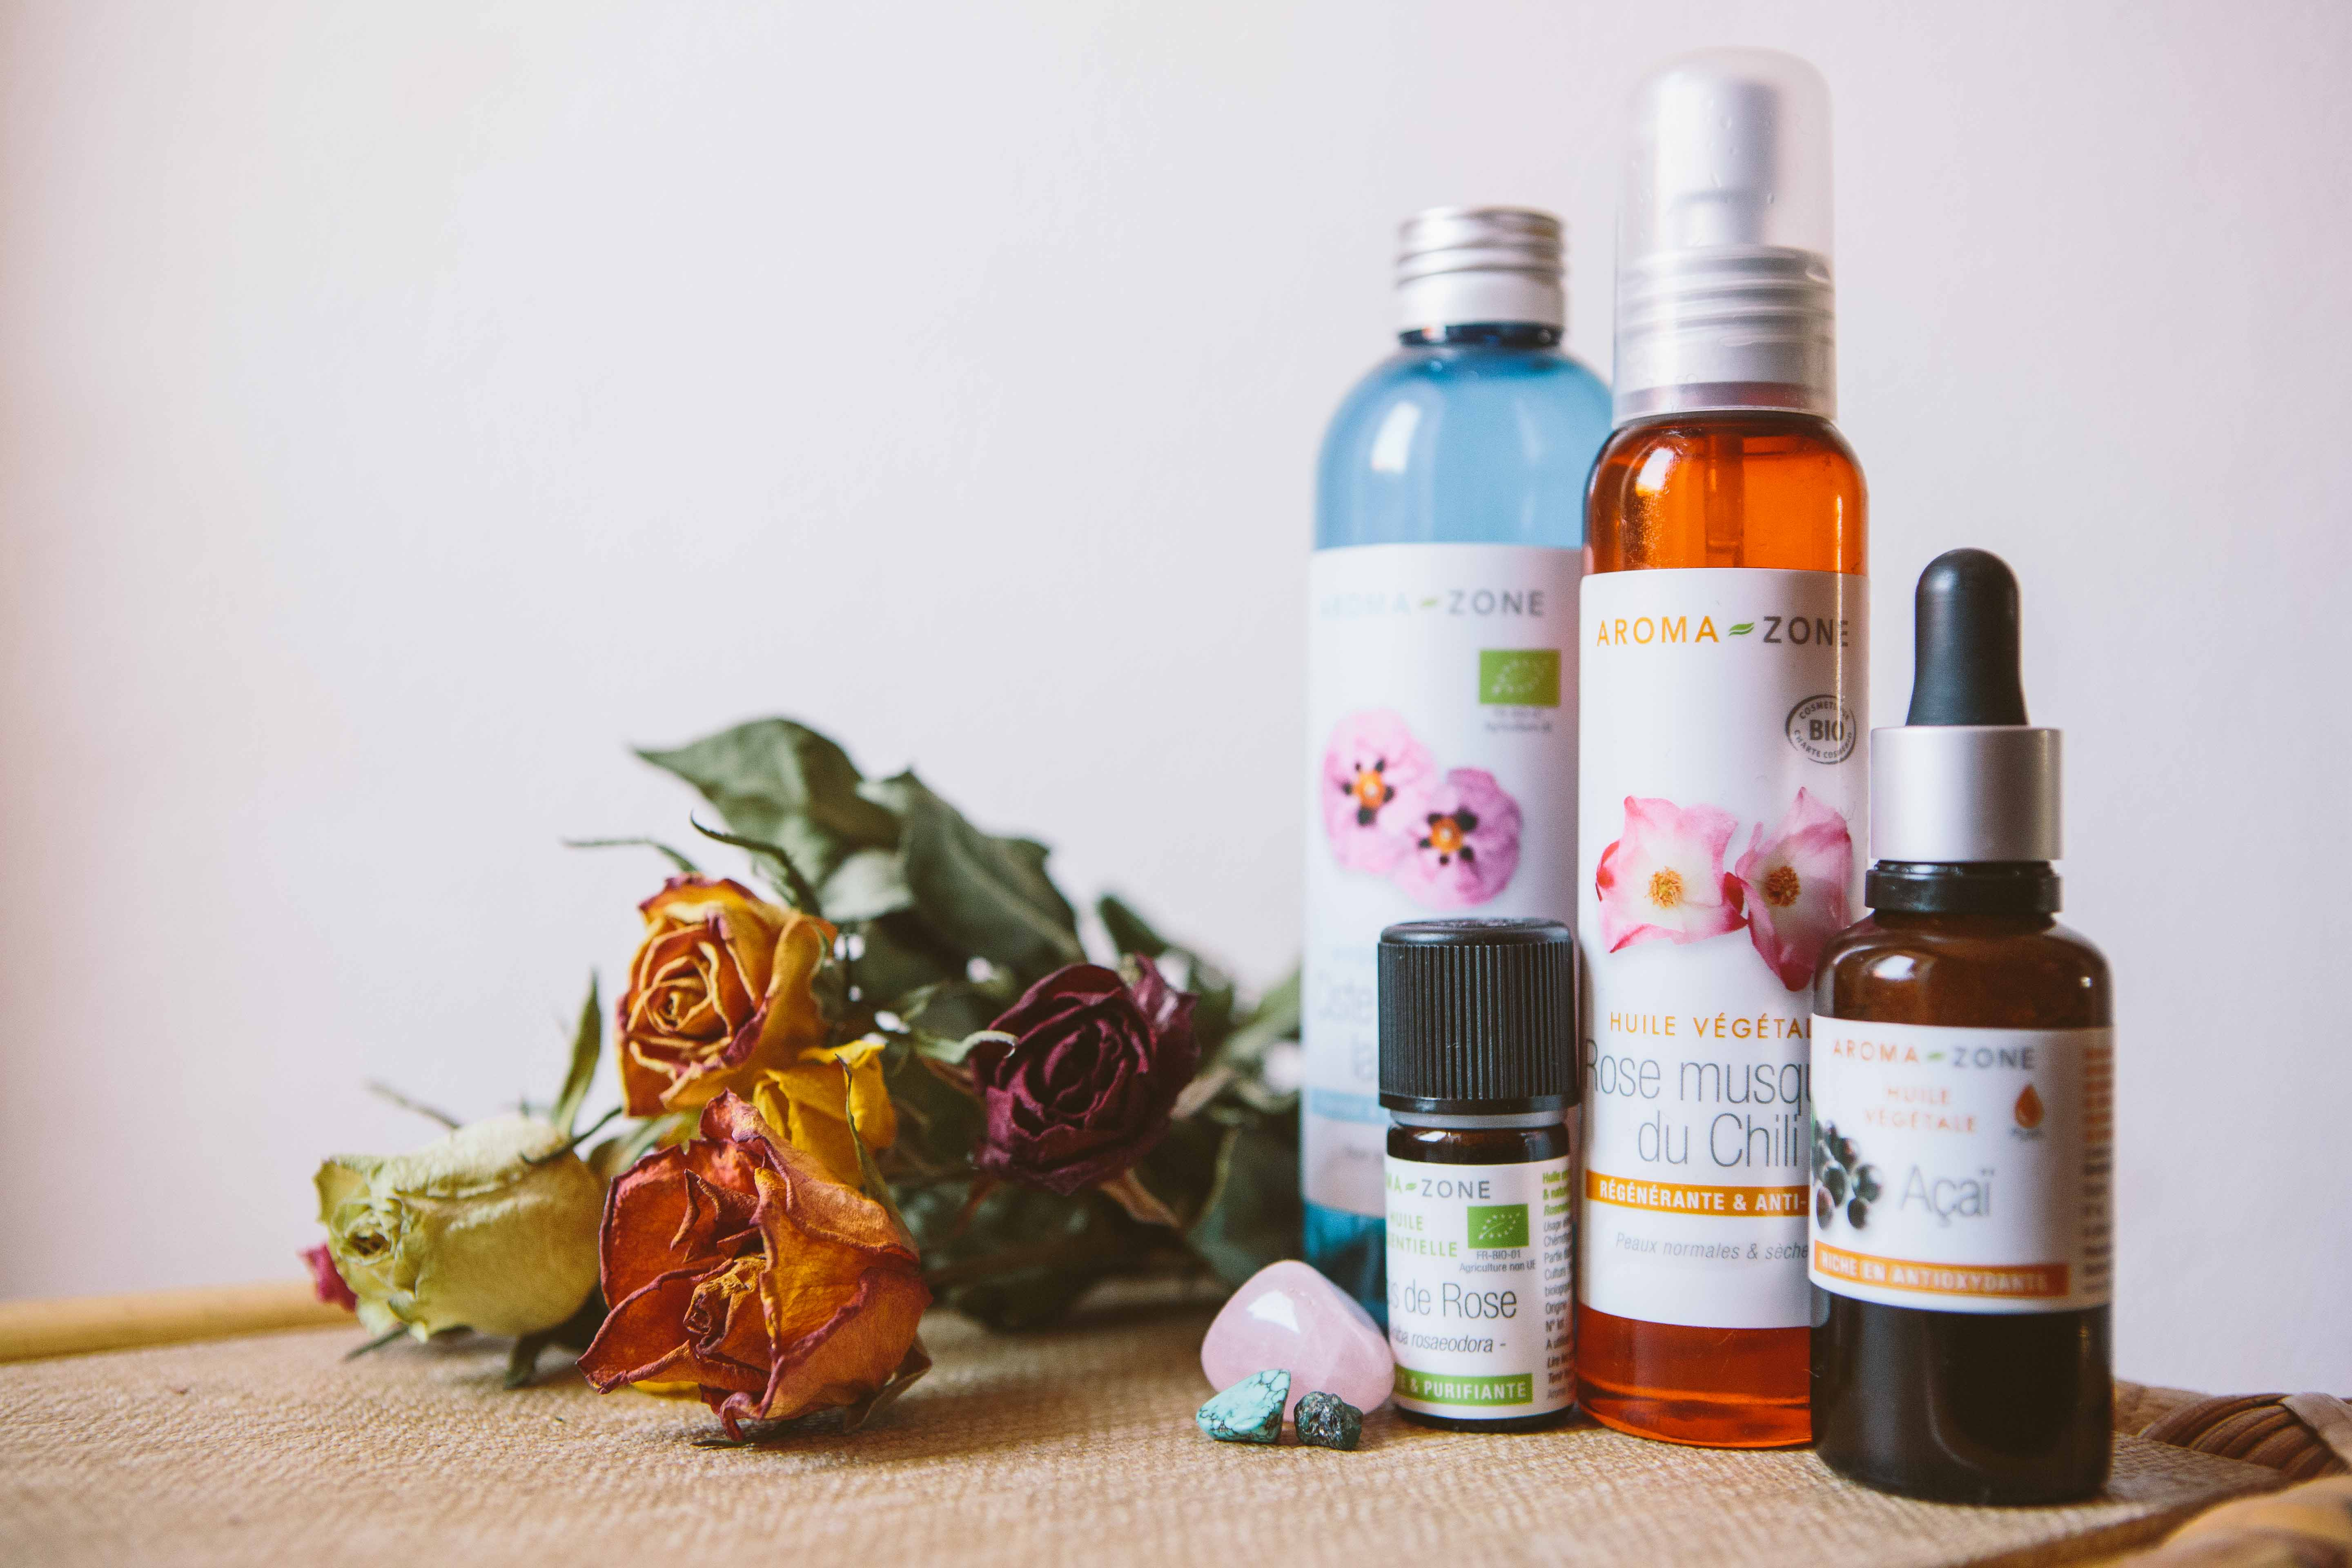 Naturel beauty product from Aroma-zone